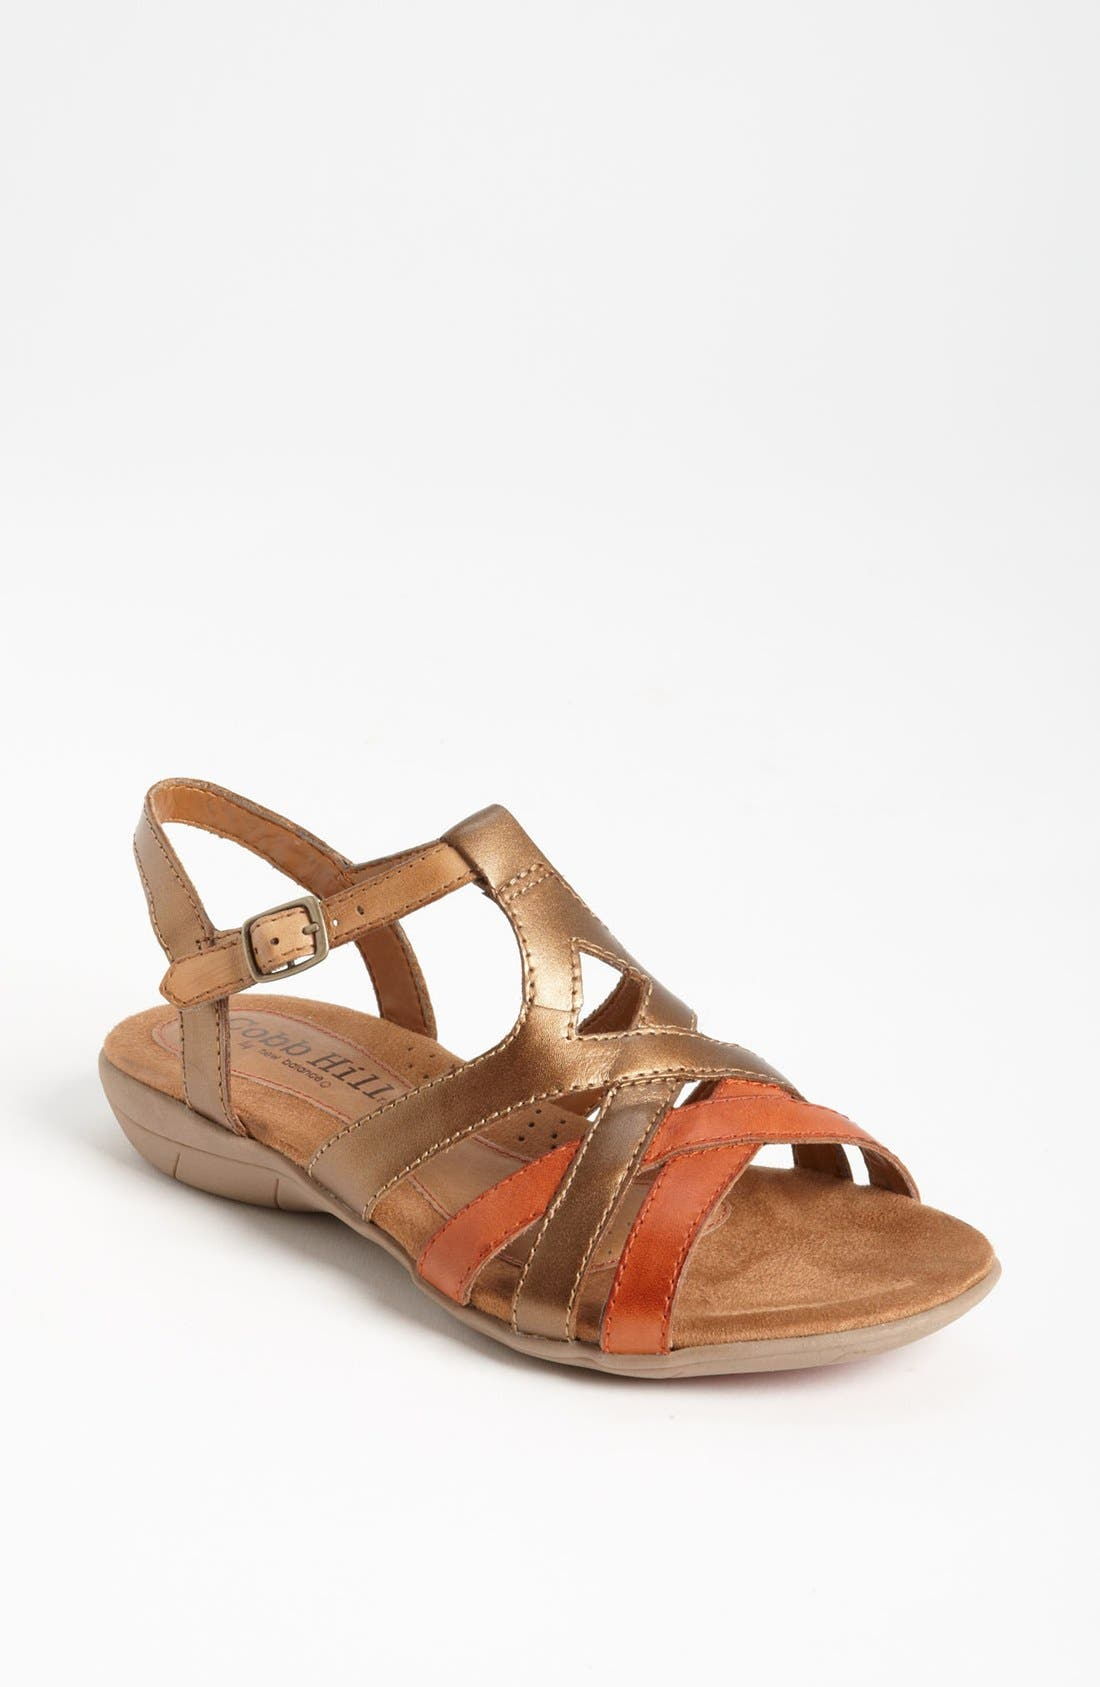 Alternate Image 1 Selected - Cobb Hill 'Willette' Sandal